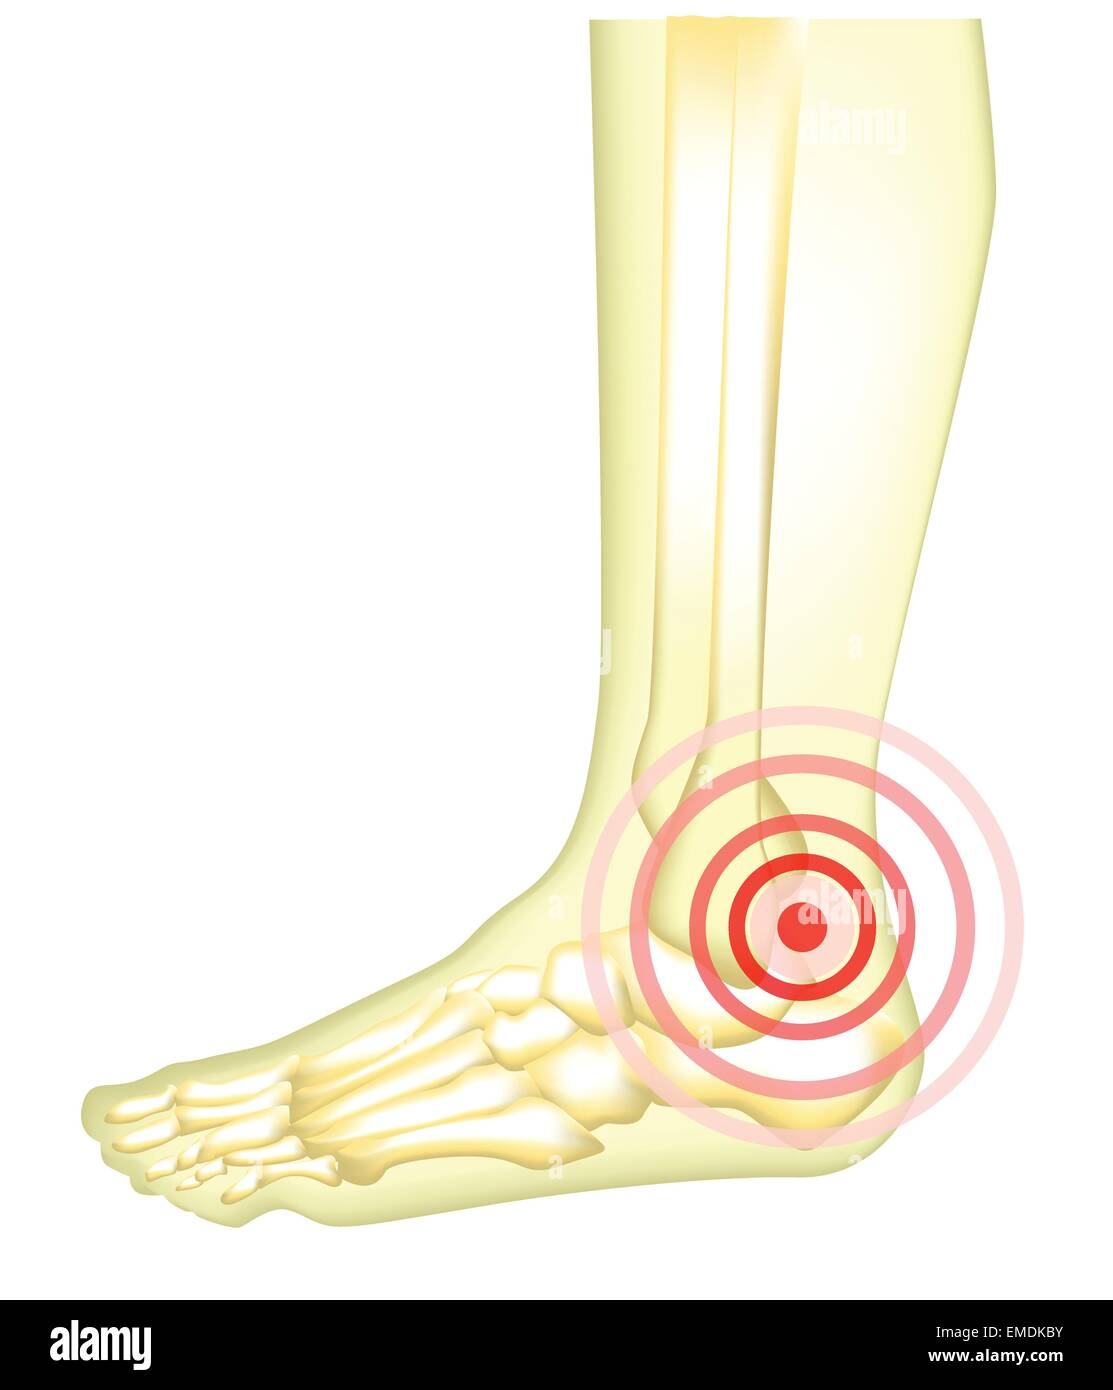 Foot Pain Stock Vector Images - Alamy